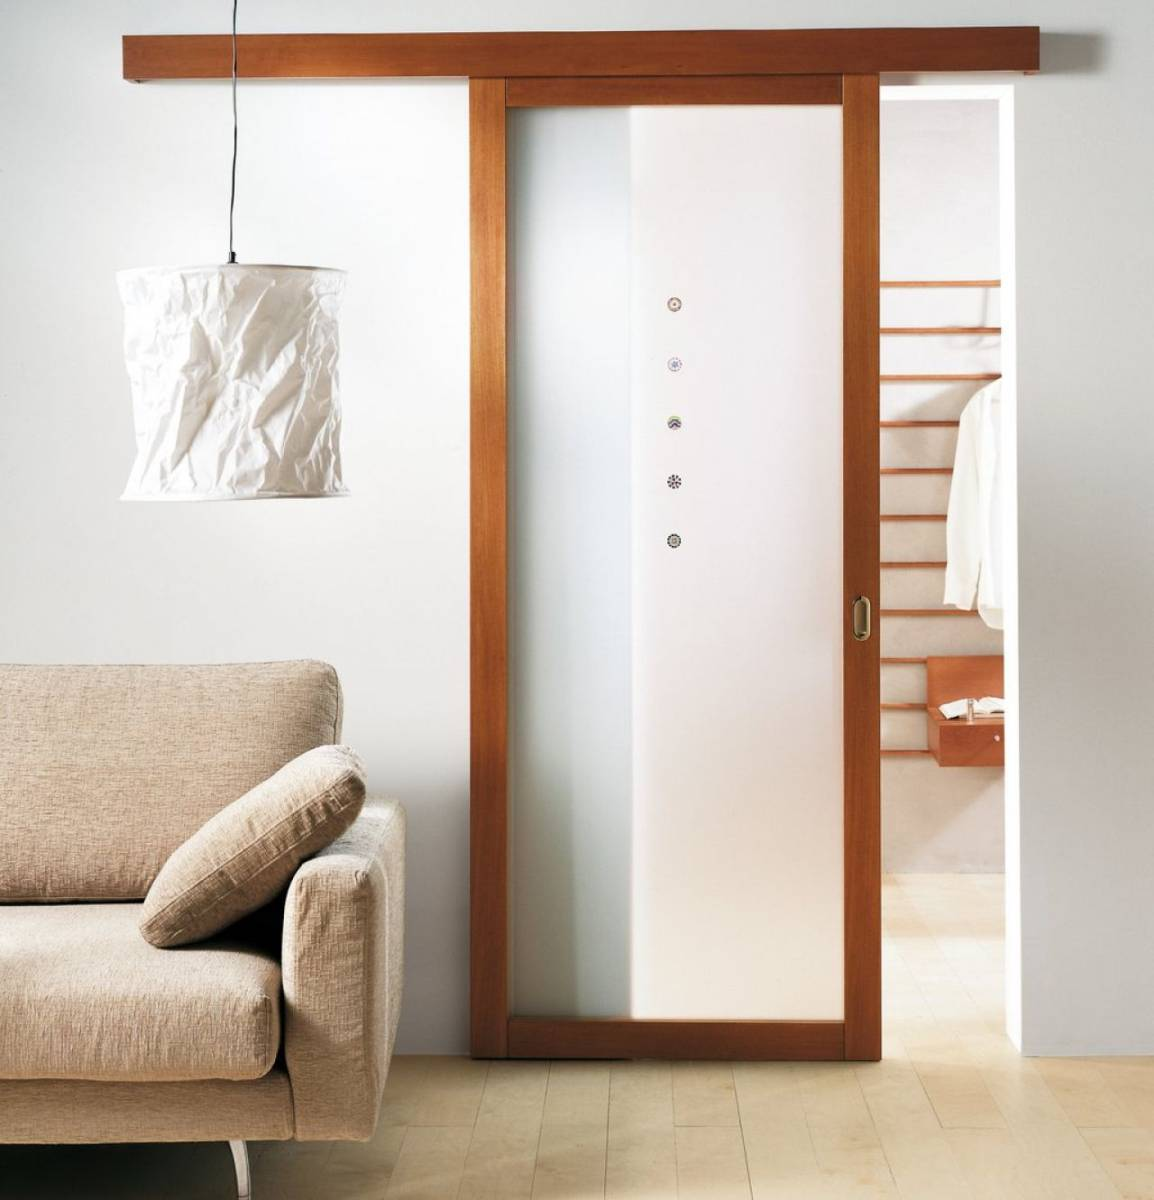 Sliding French Pocket Doors interior sliding french doors. black pocket doors with paned glass